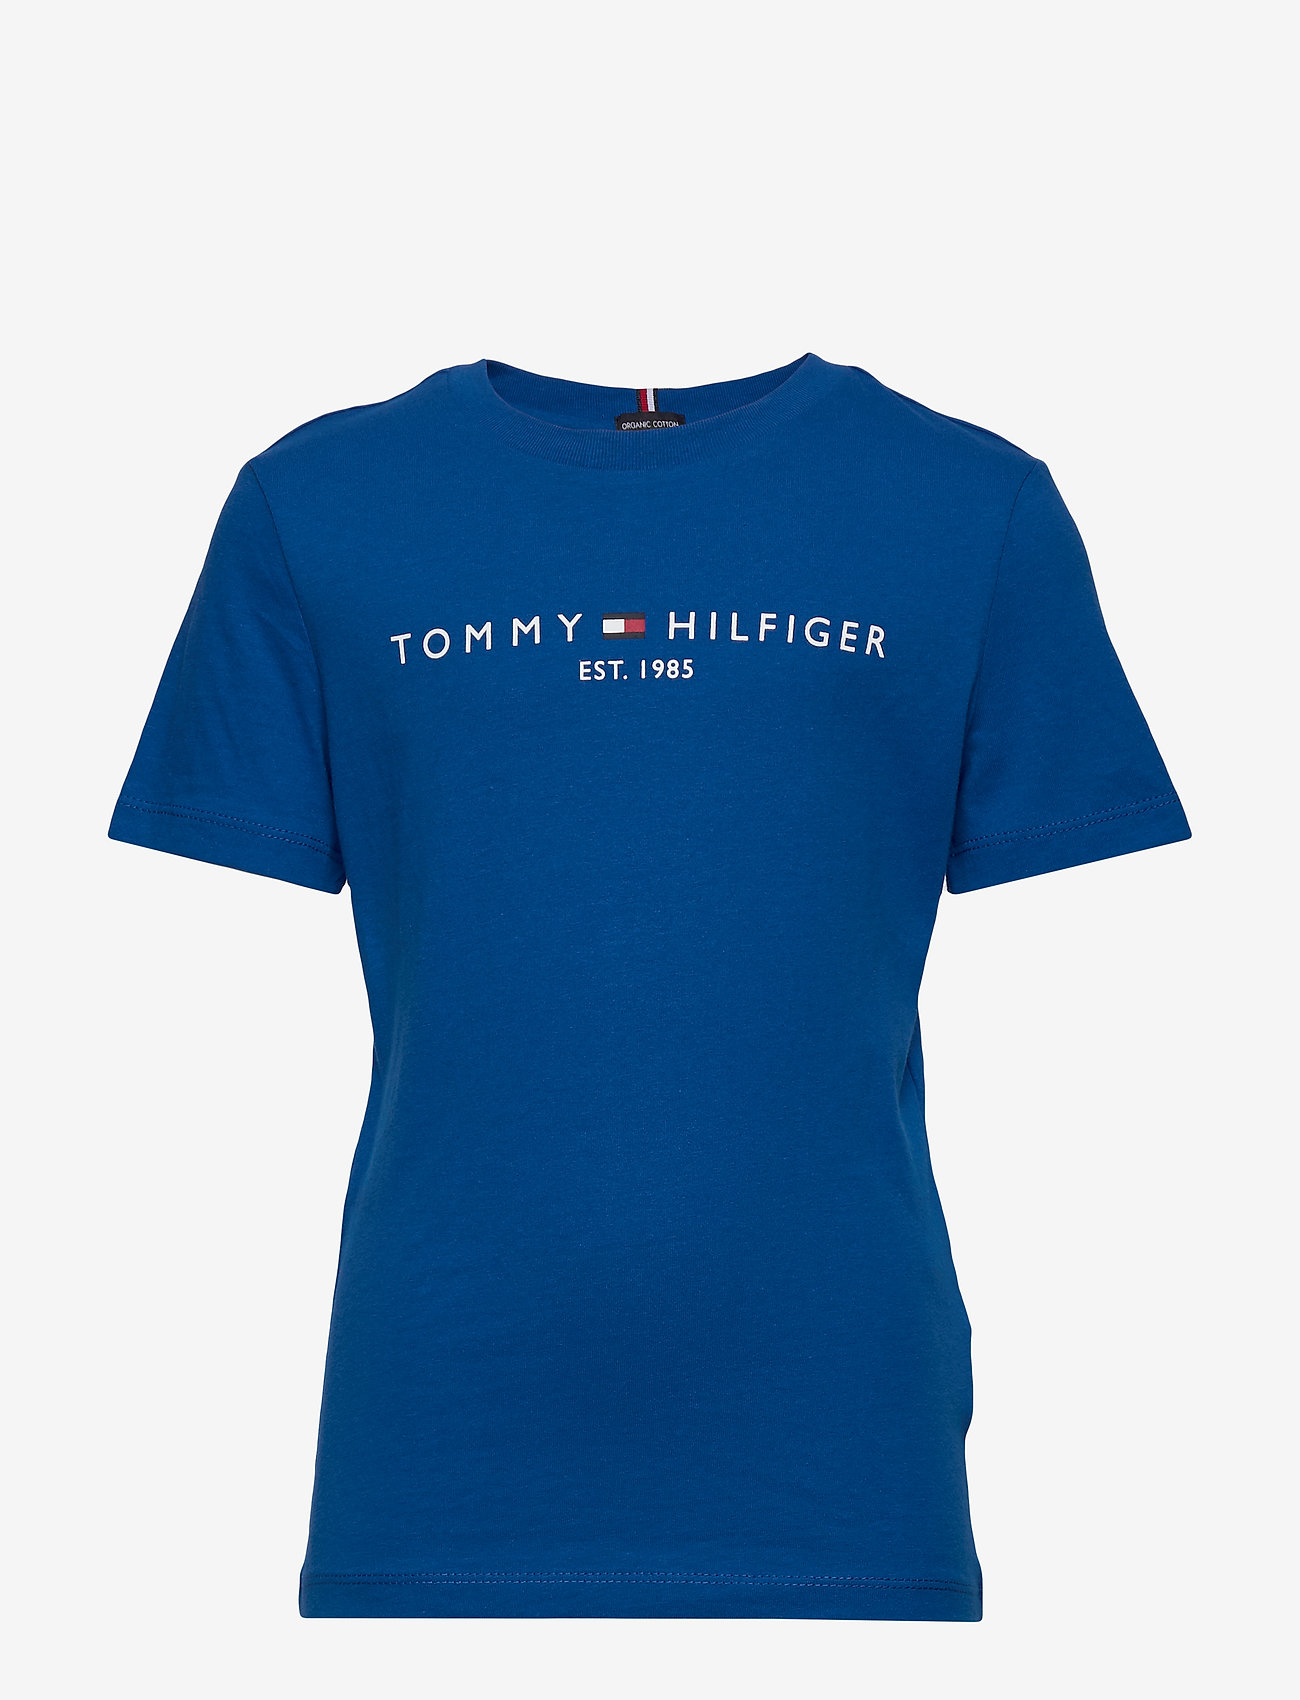 Tommy Hilfiger - ESSENTIAL TEE S/S - short-sleeved - lapis lazuli 431-880